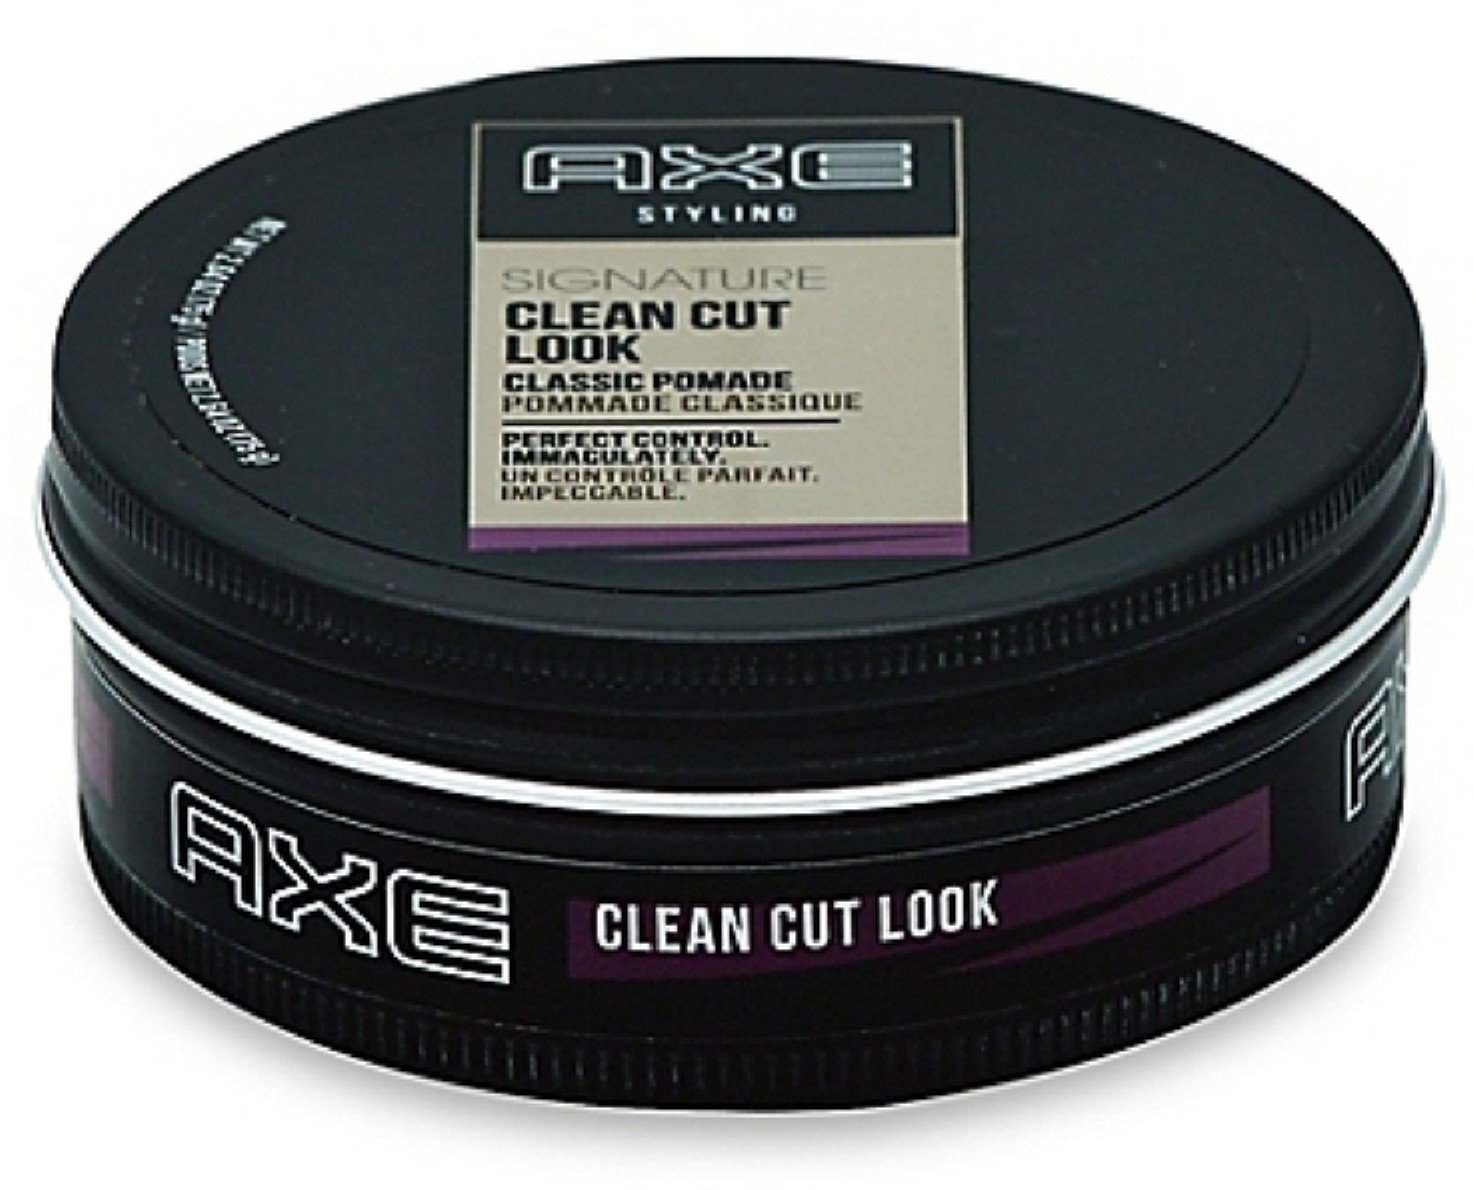 Axe Refined Clean Cut Look Pomade, 2.64oz Per Jar (6 Pack) by AXE